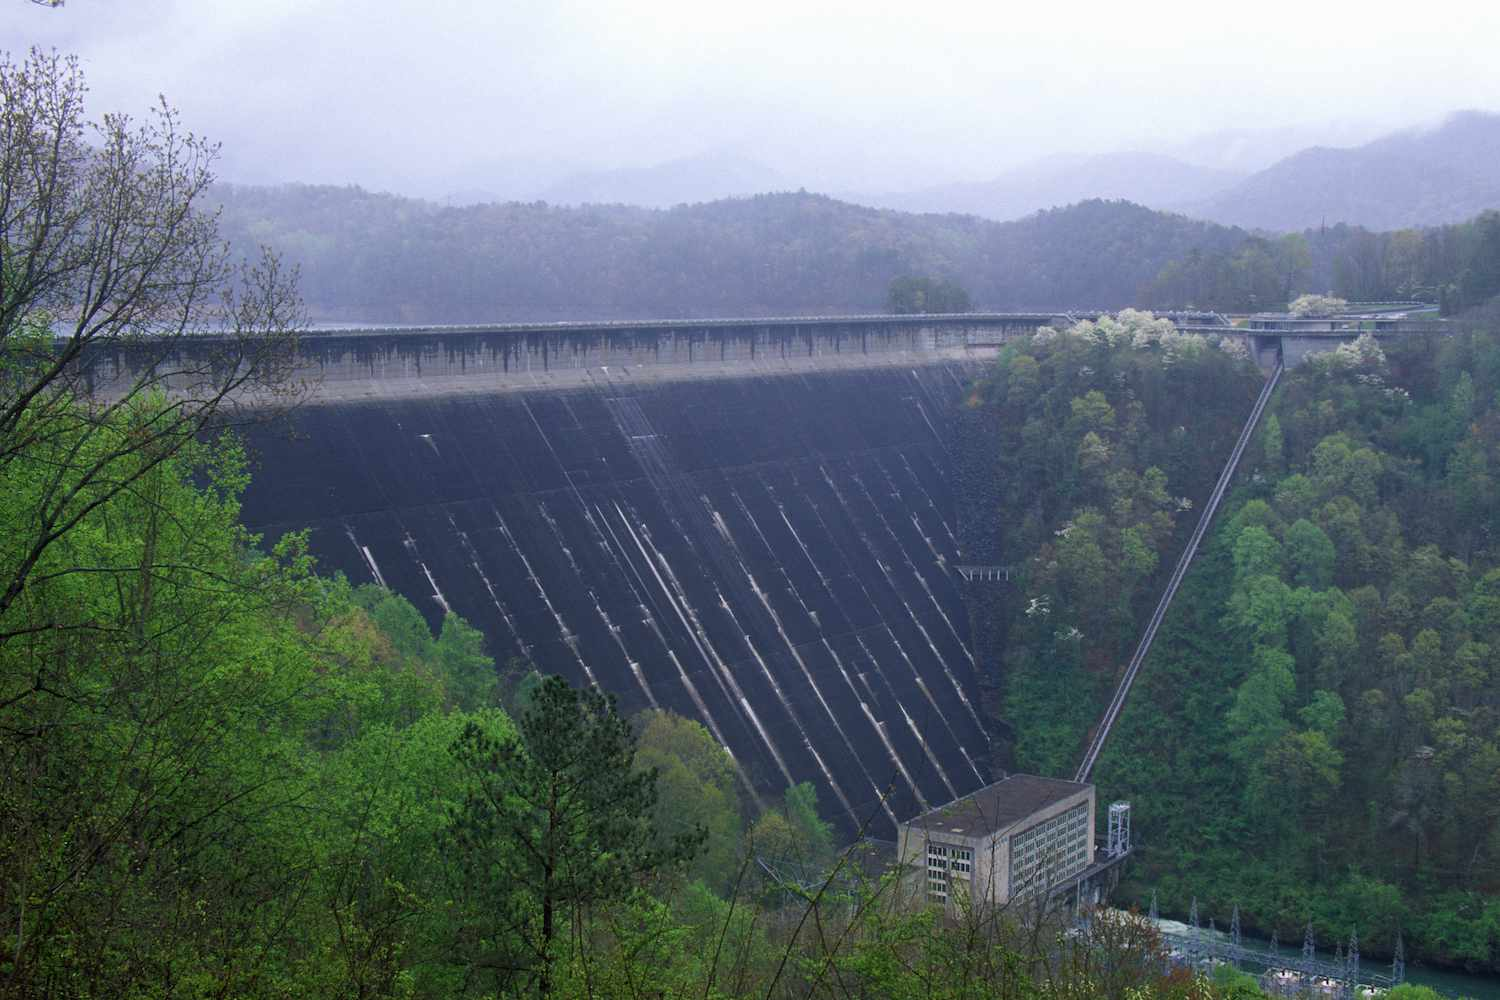 The Fontana Dam stretches across the Little Tennessee River with green deciduous trees growing on each side